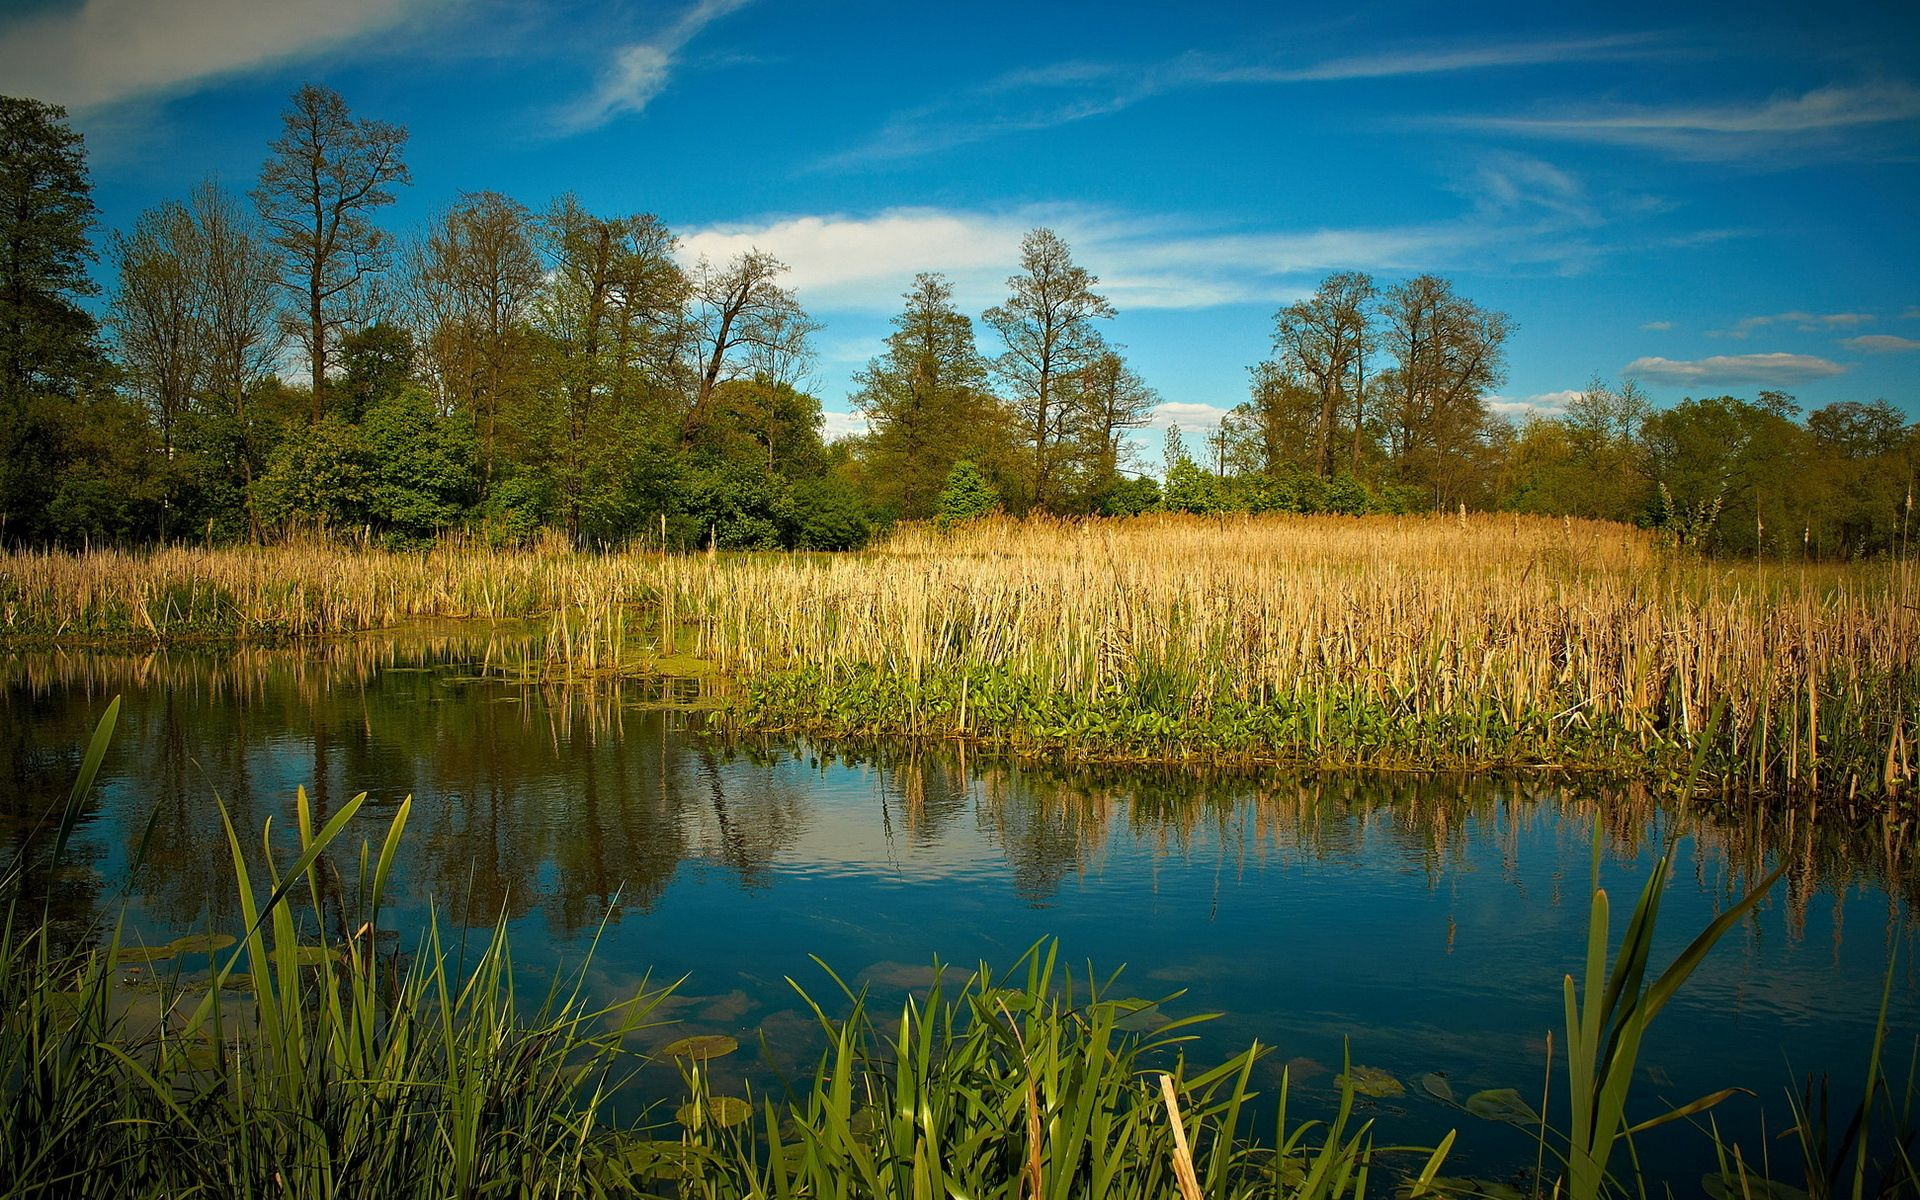 54313 download wallpaper Landscape, Nature, Lake, Forest, Vegetation screensavers and pictures for free